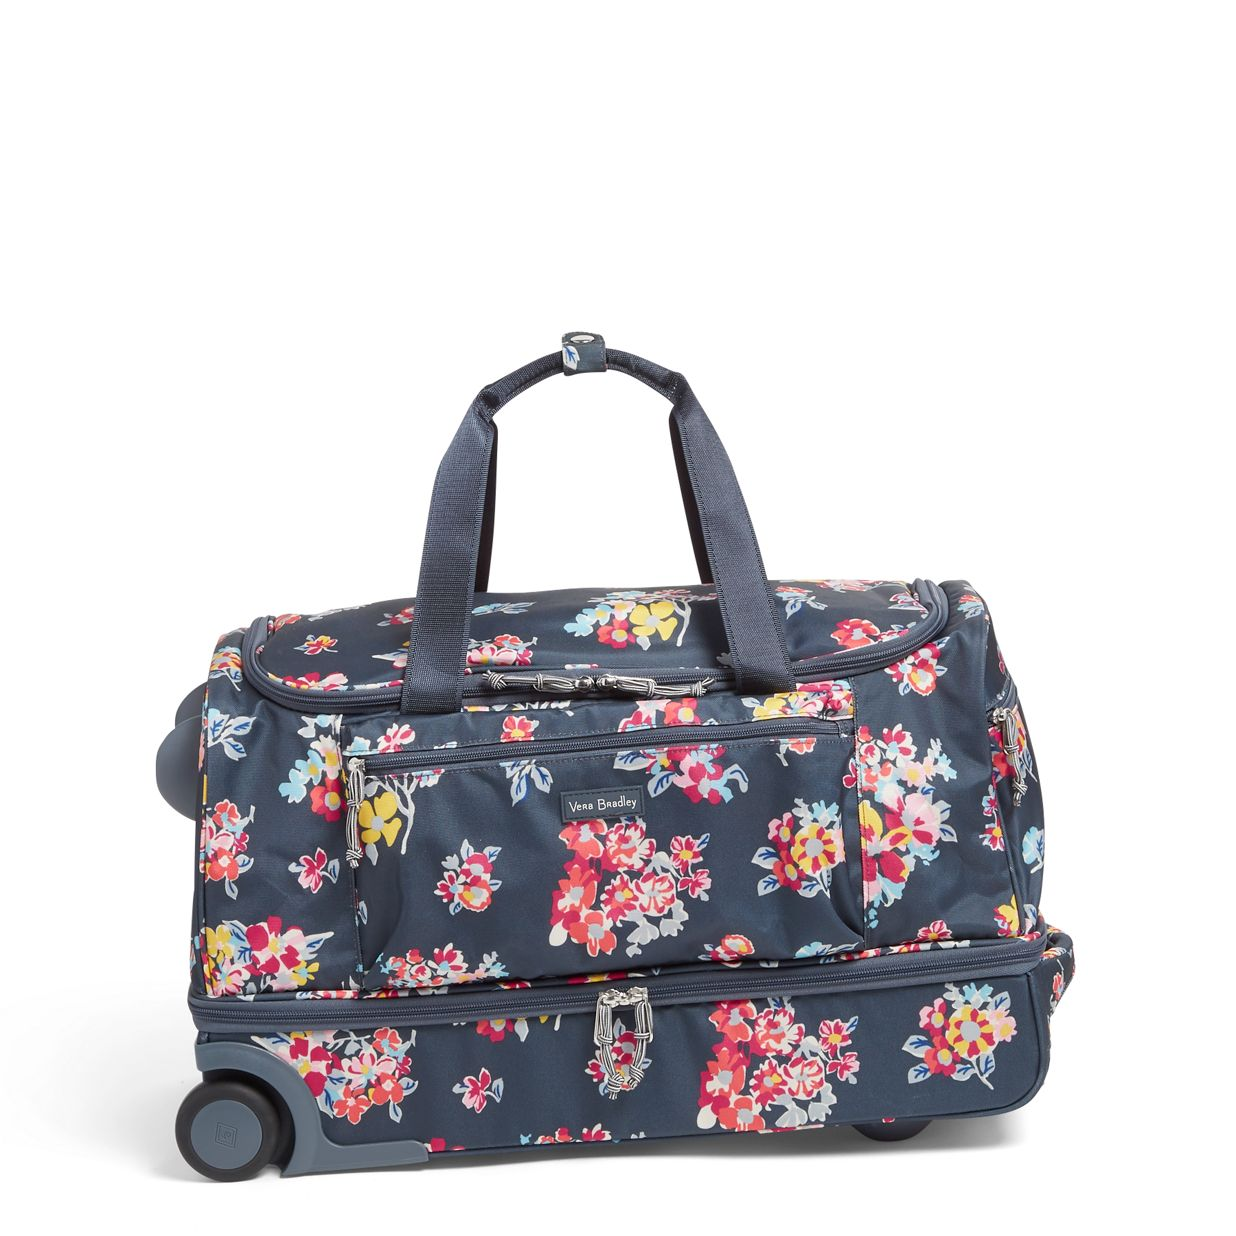 d8c91a10e Image of Lighten Up Foldable Rolling Duffel in Tossed Posies ...